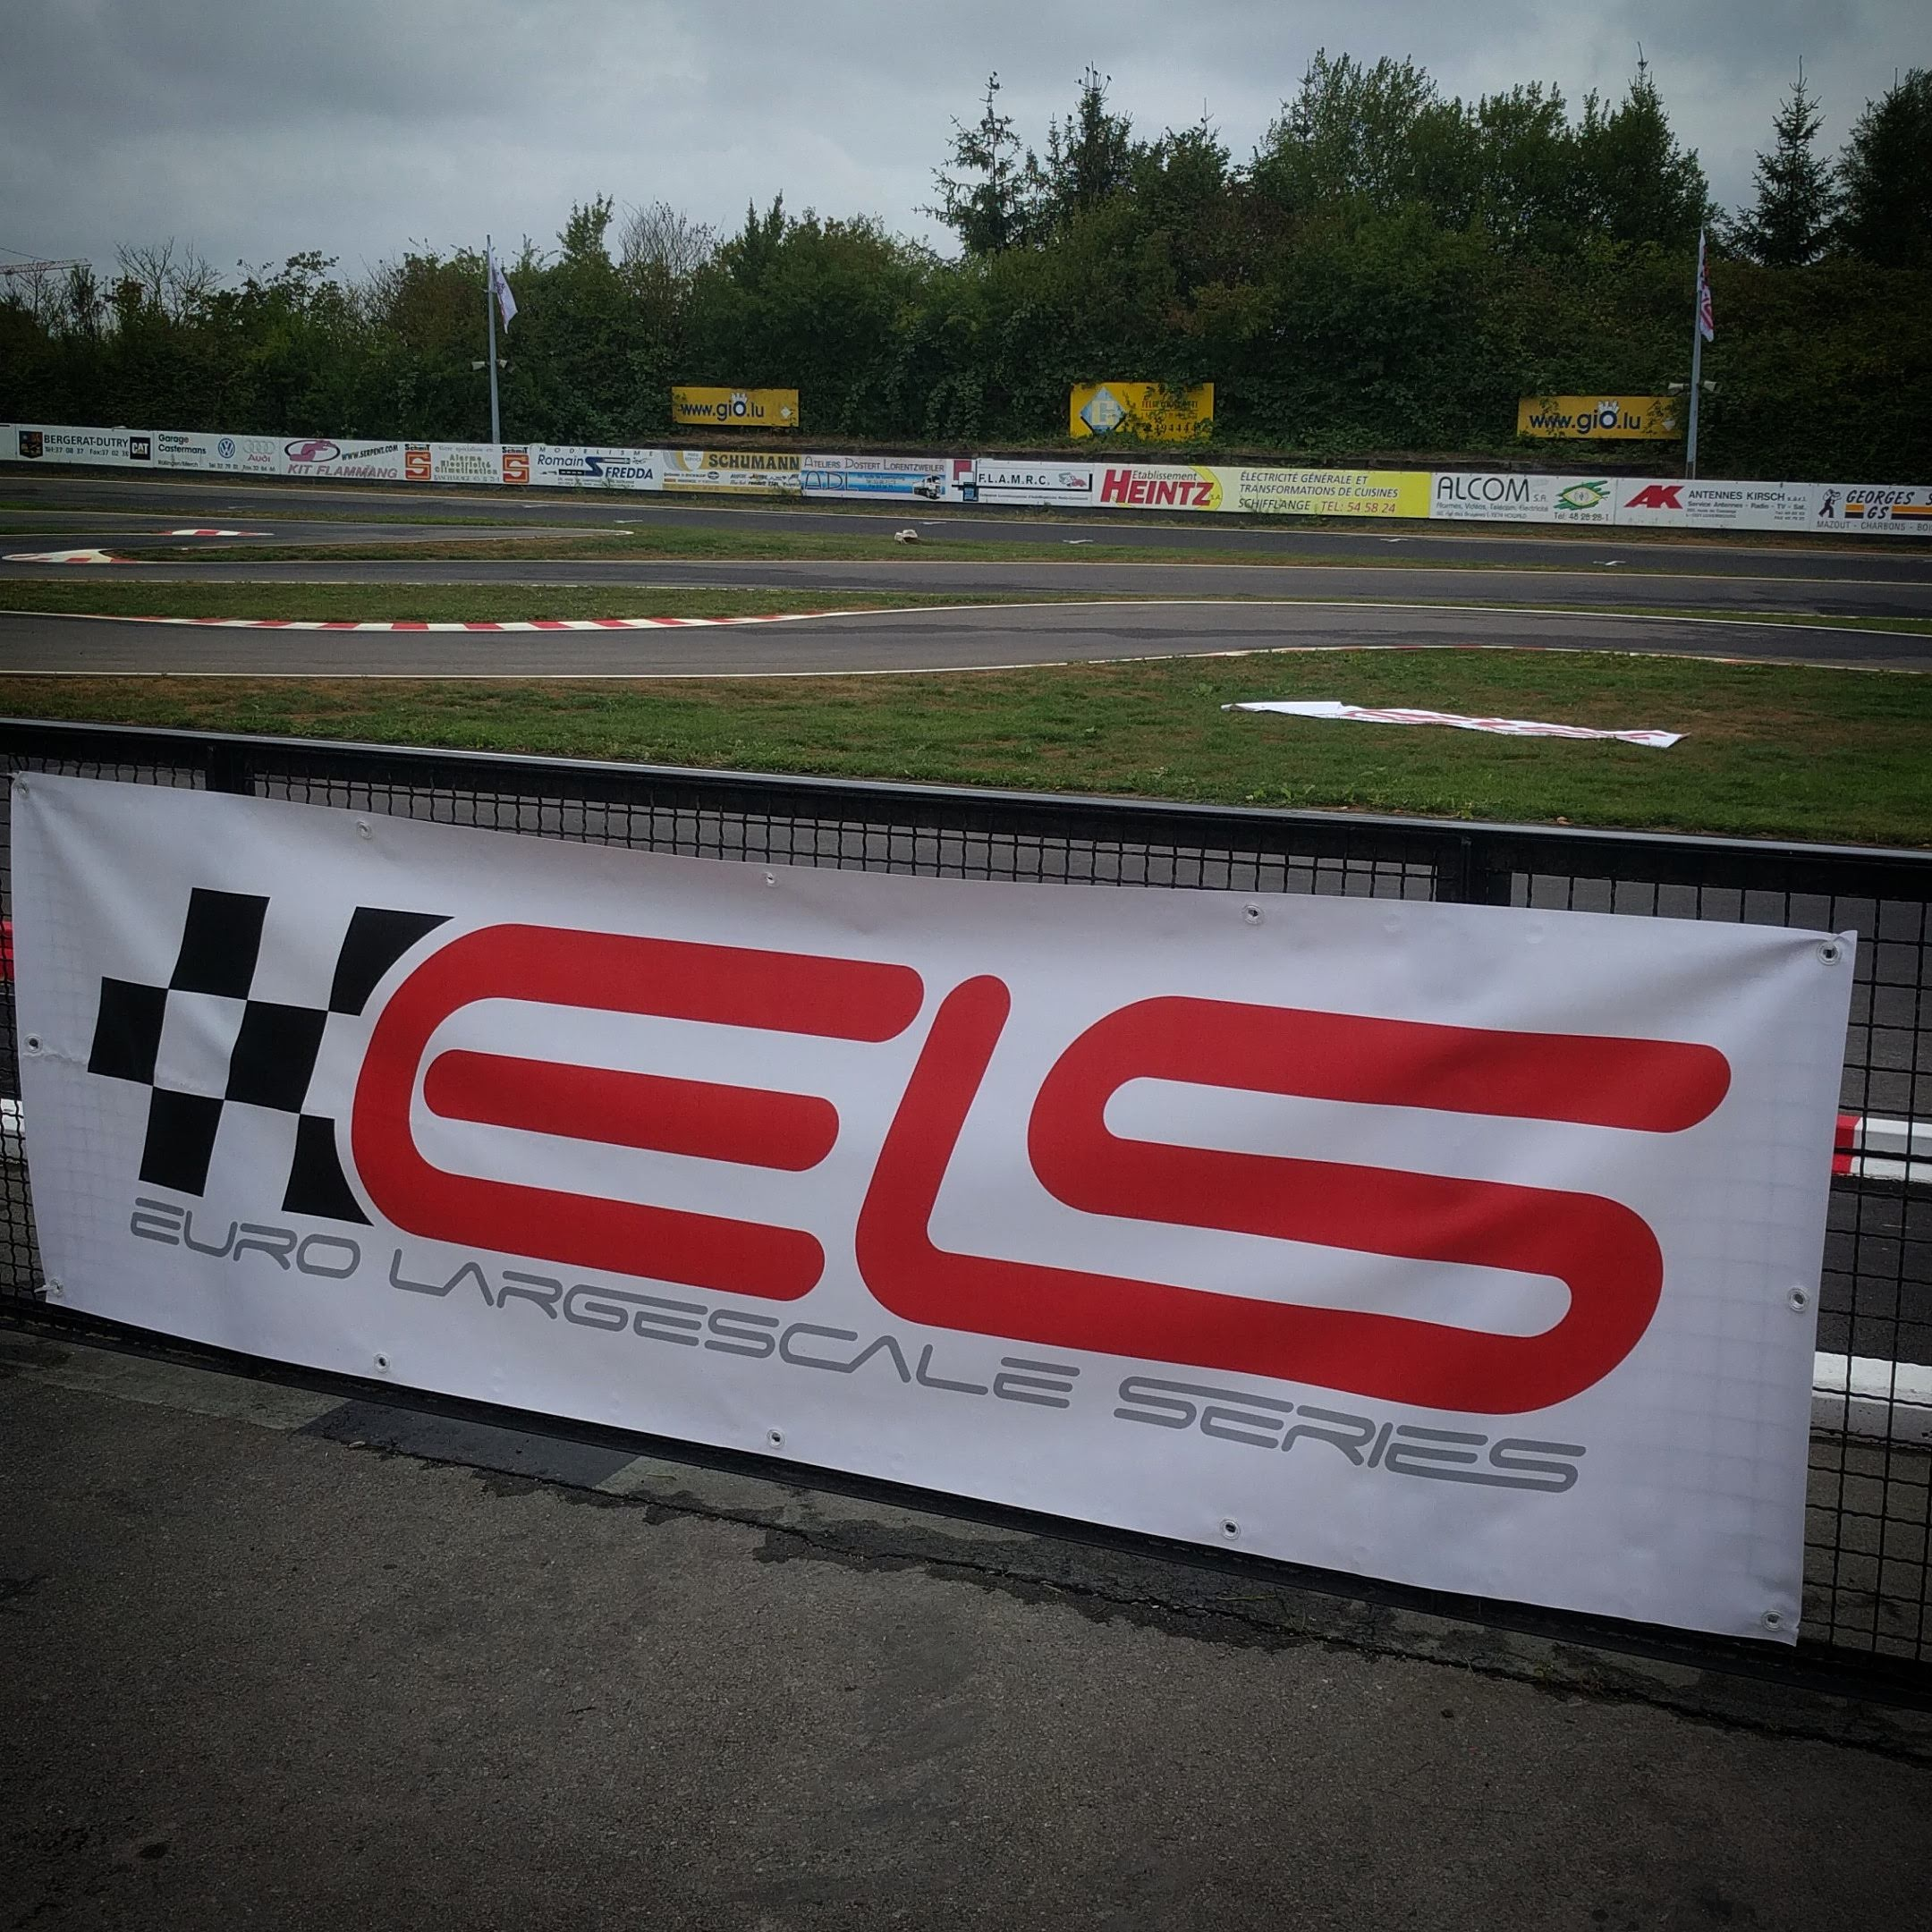 ELS European LargeScale Series